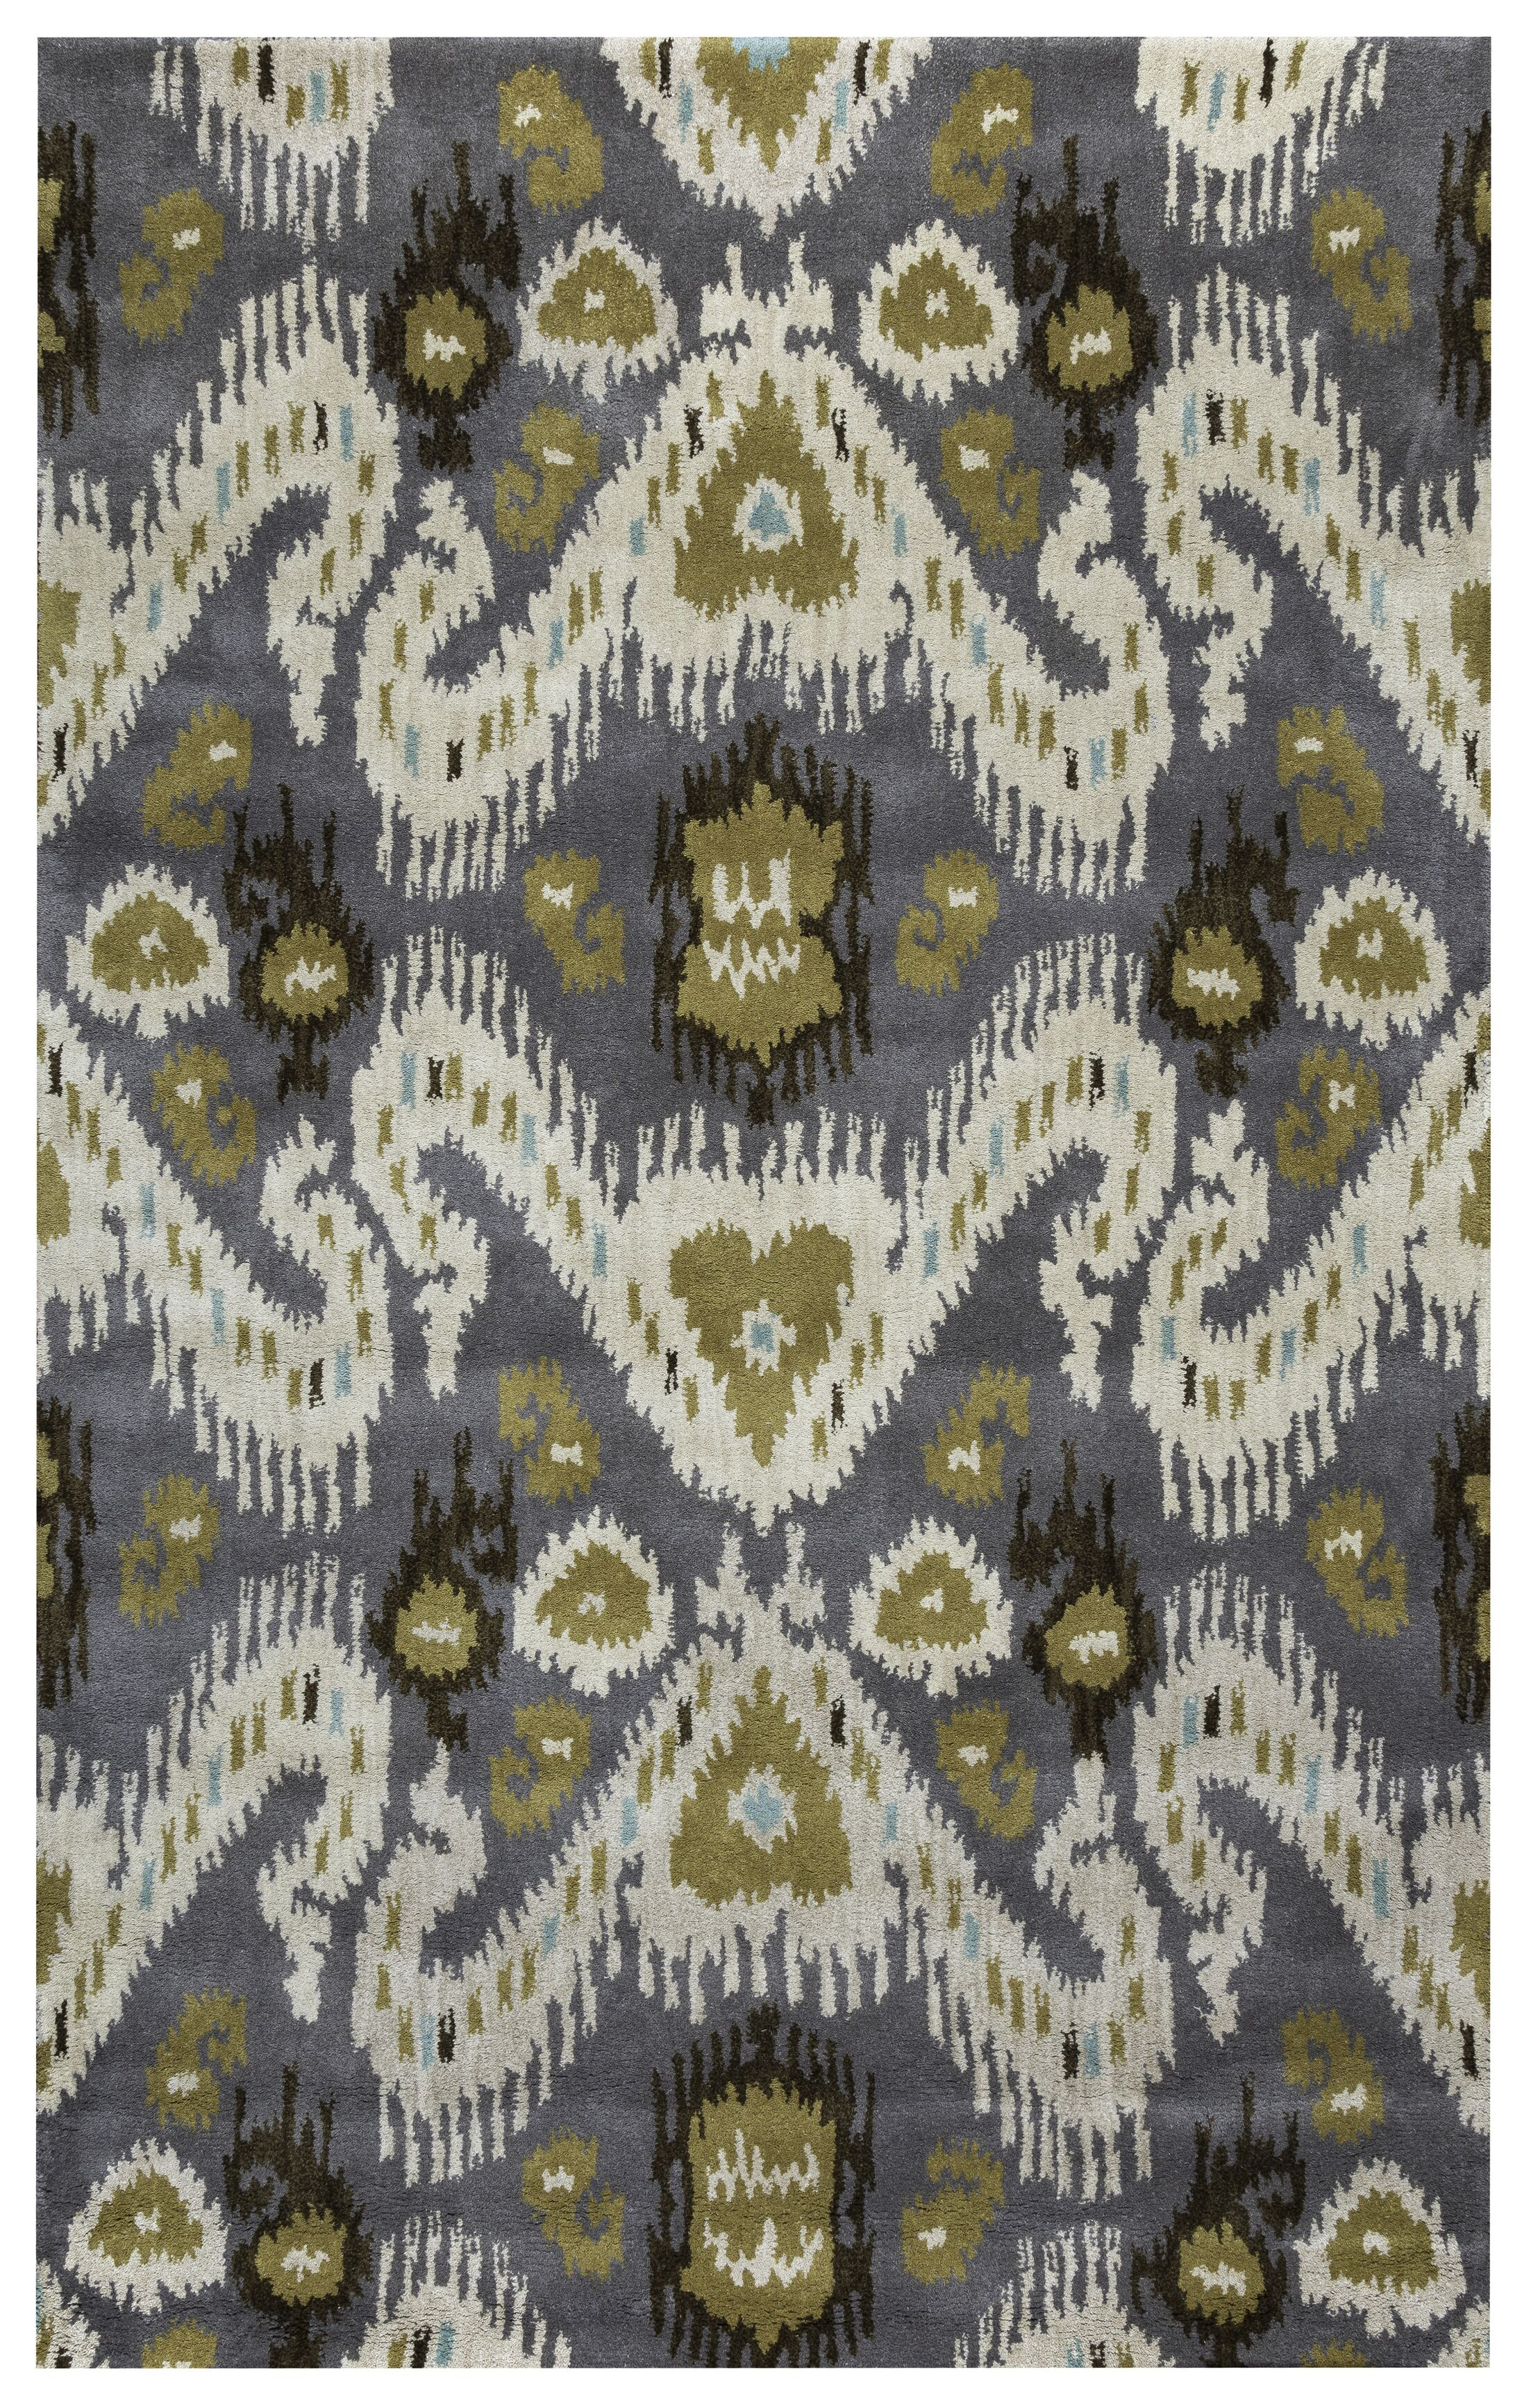 Thessaloniki Hand-Tufted Gray/Beige Area Rug Rug Size: Runner 2'6